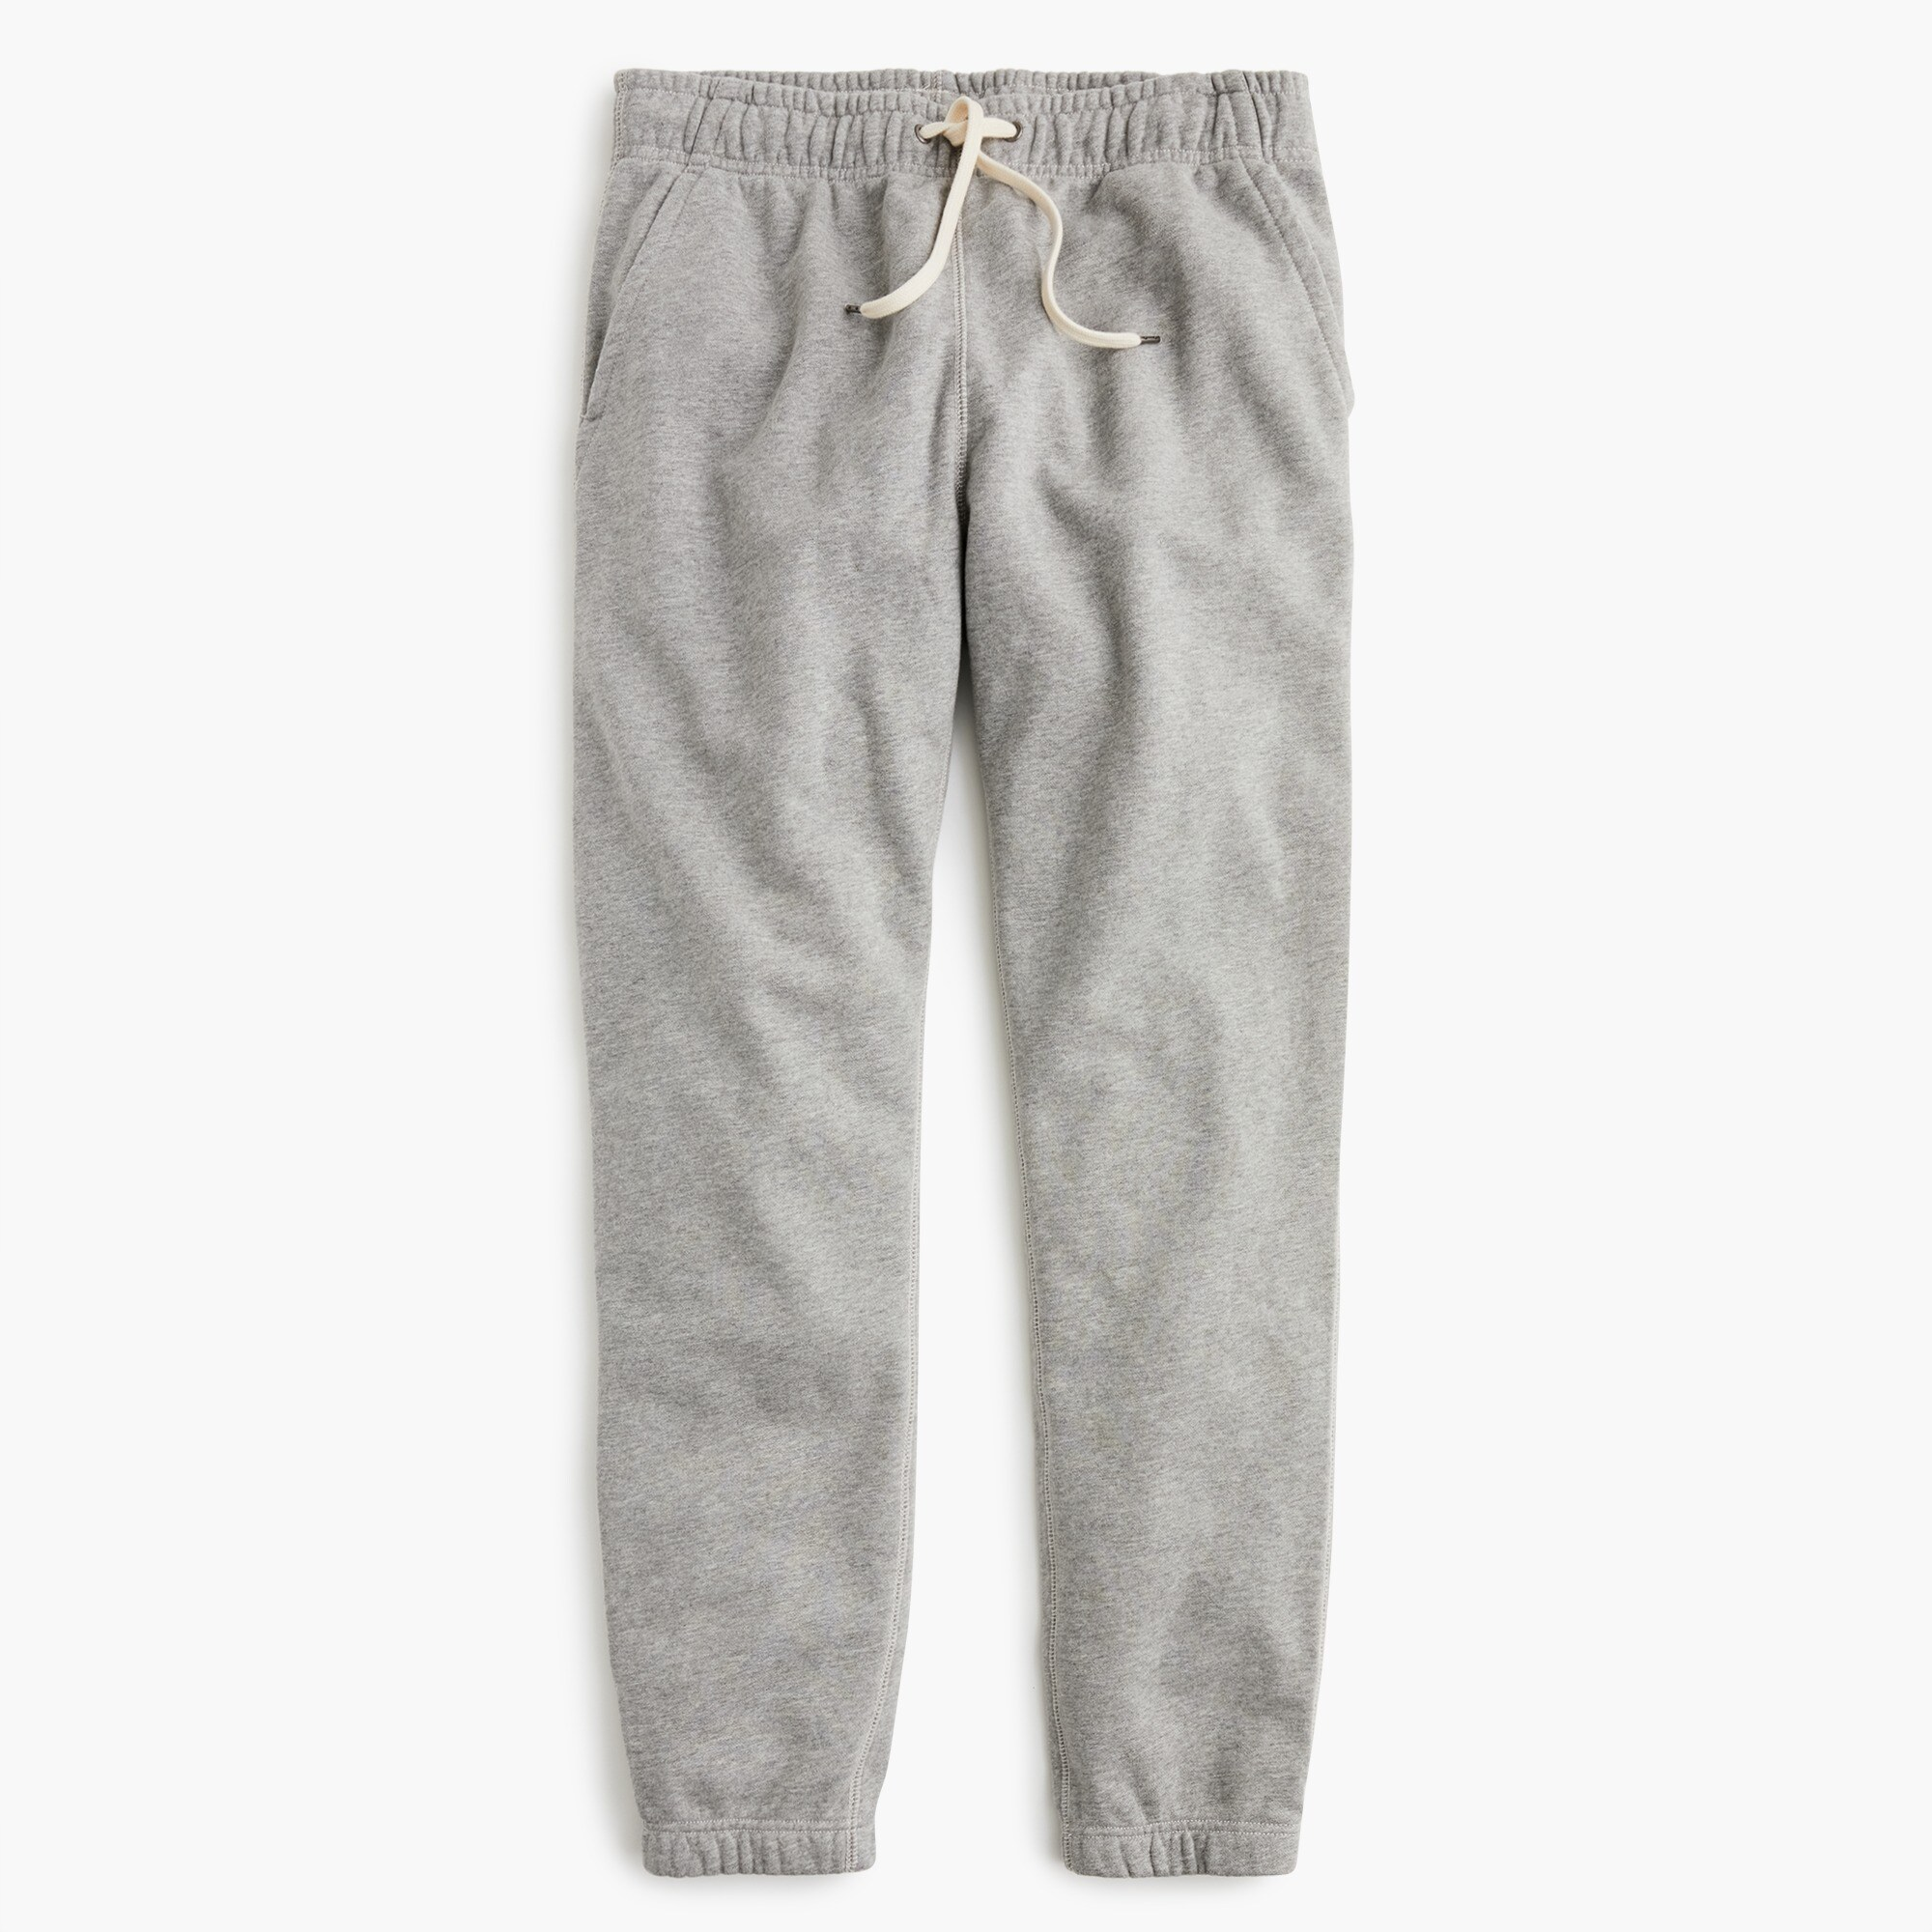 Image 4 for French terry sweatpants